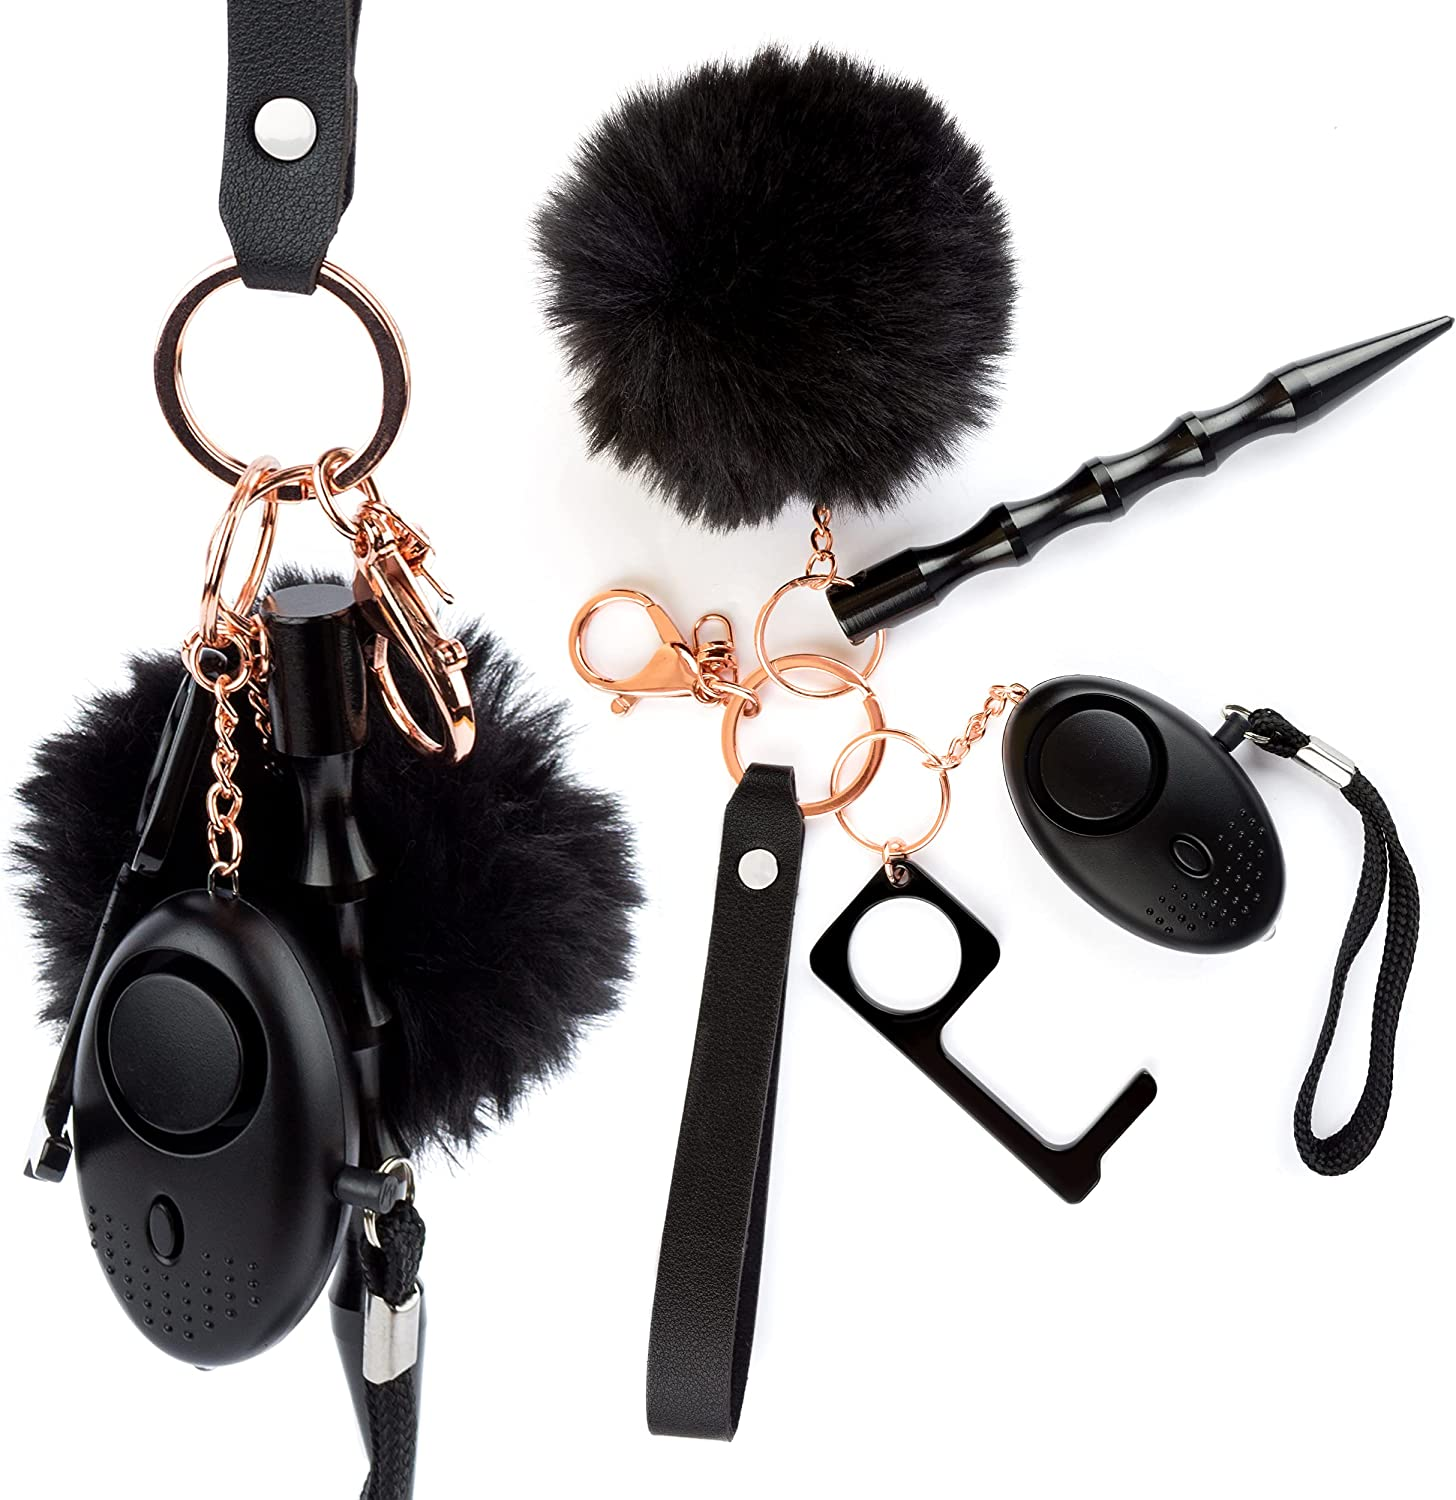 Vegan Leather Safety Keychain Set for Women, Girls - Portable Self Protection Key Chain Defense